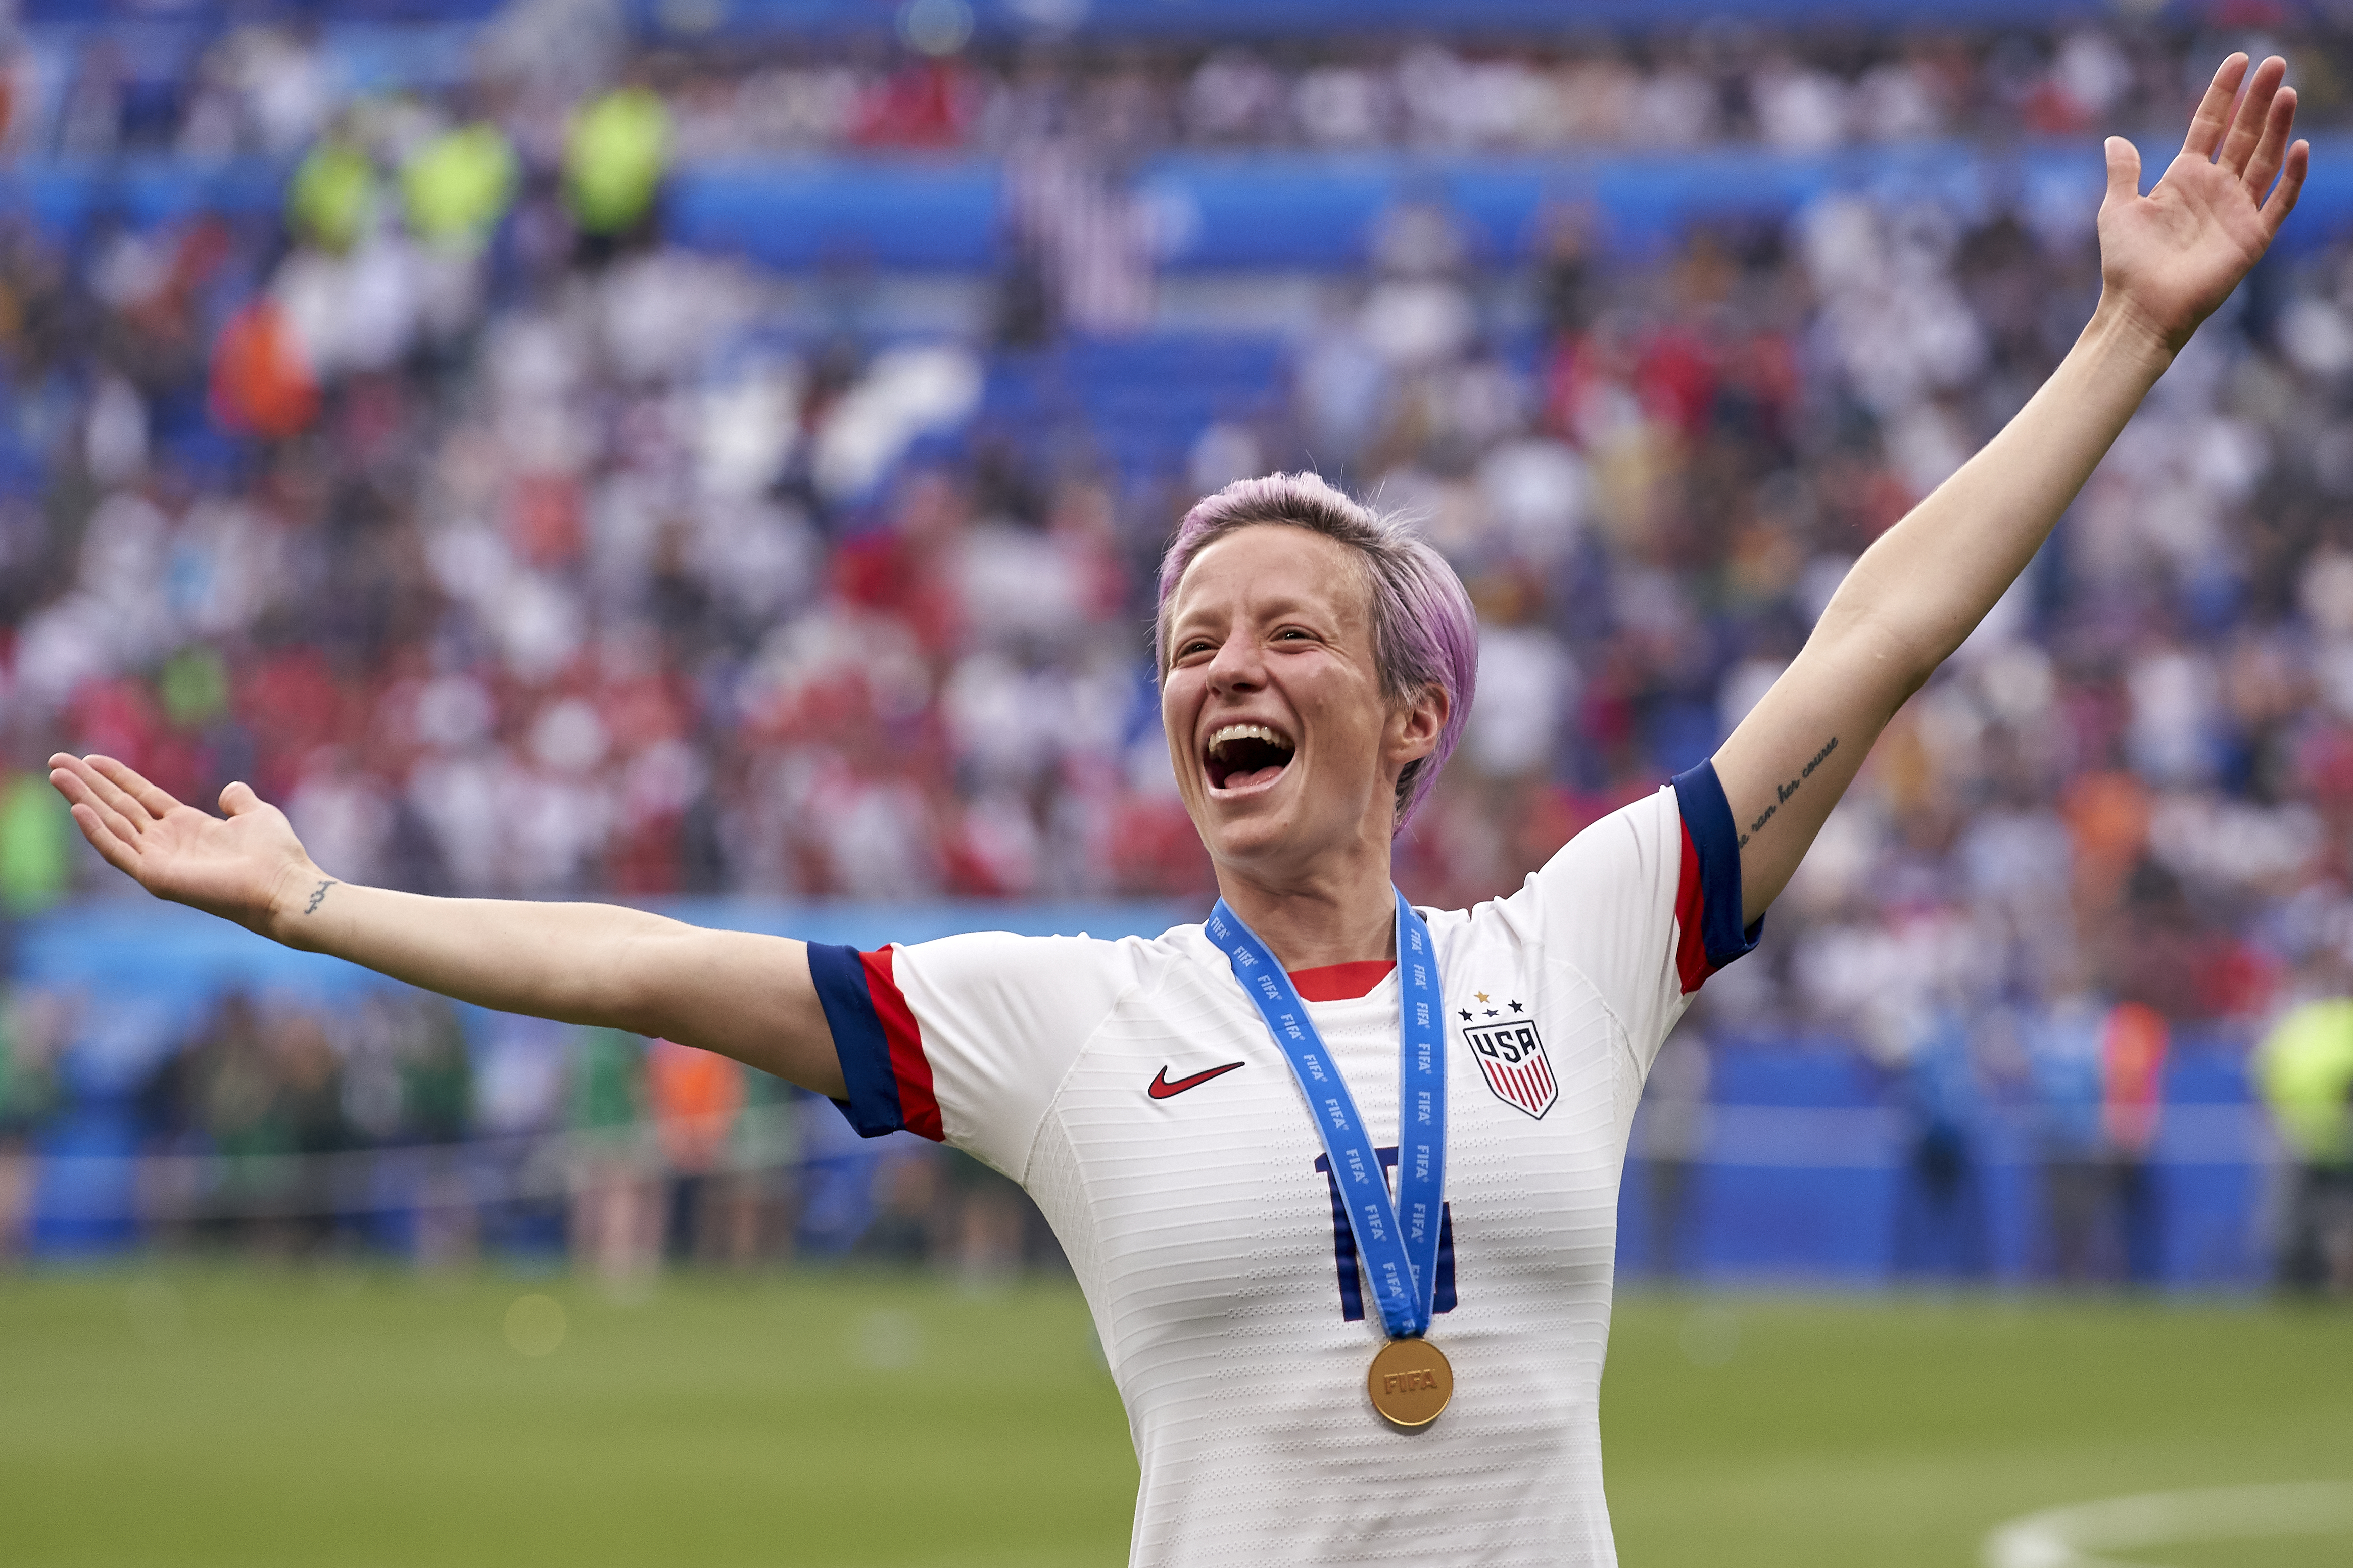 Megan Rapinoe of the USA celebrates winning after the 2019 FIFA Women's World Cup France Final match between the USA and Netherlands at Stade de Lyon on July 7, 2019 in Lyon, France.